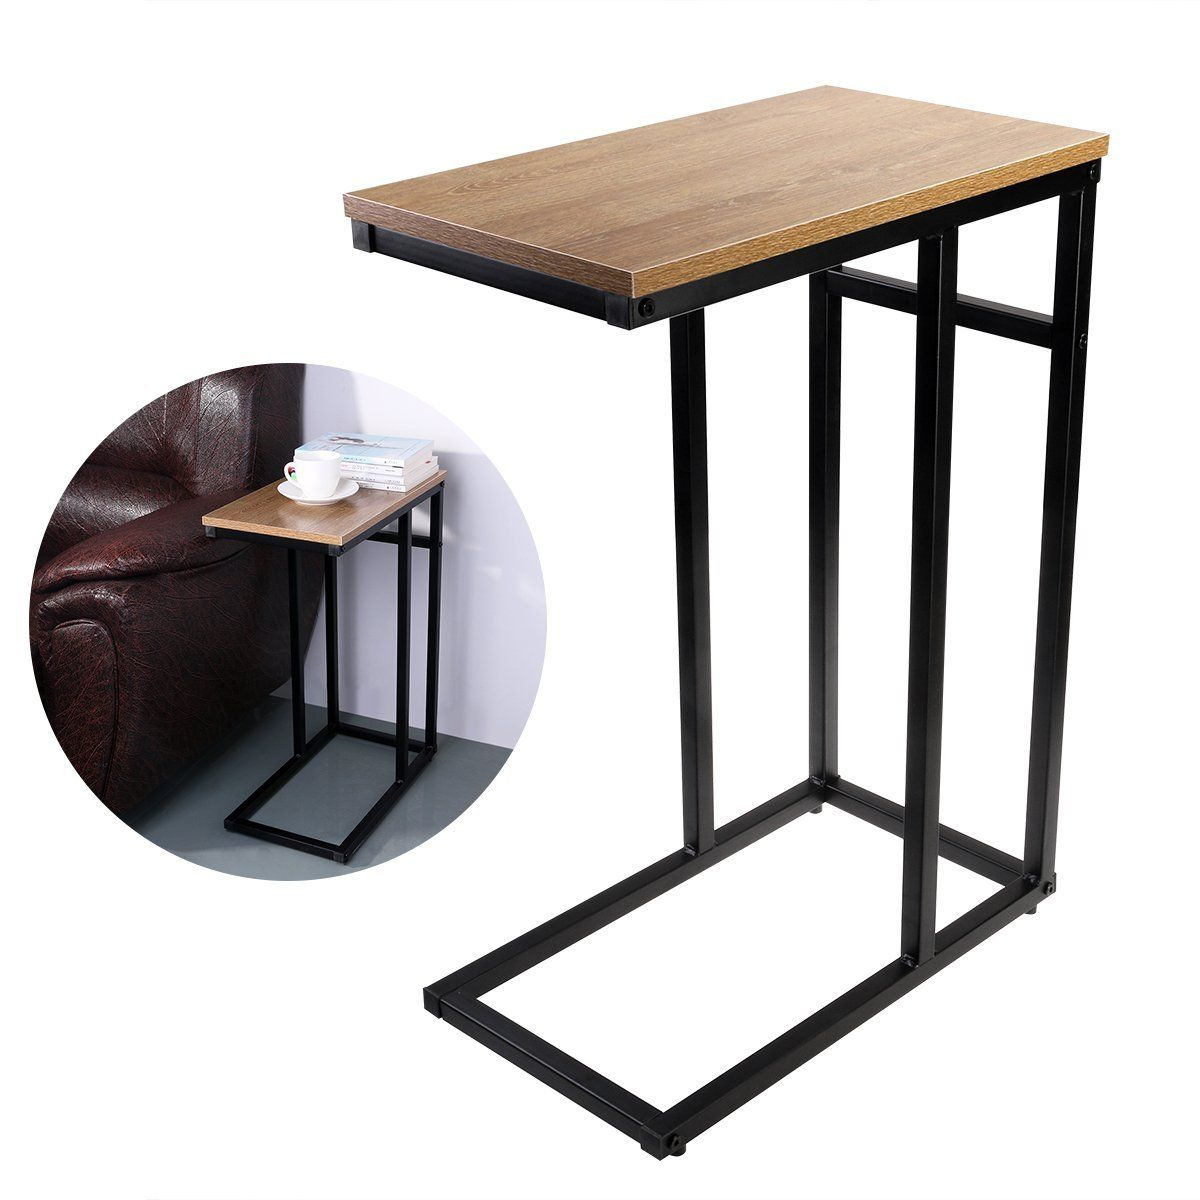 Amazon Com C Table Oulii Sofa Side Table With Wood Finish And Steel Construction Kitchen Amp Dining Sofa Side Table Coffee Table Side Table